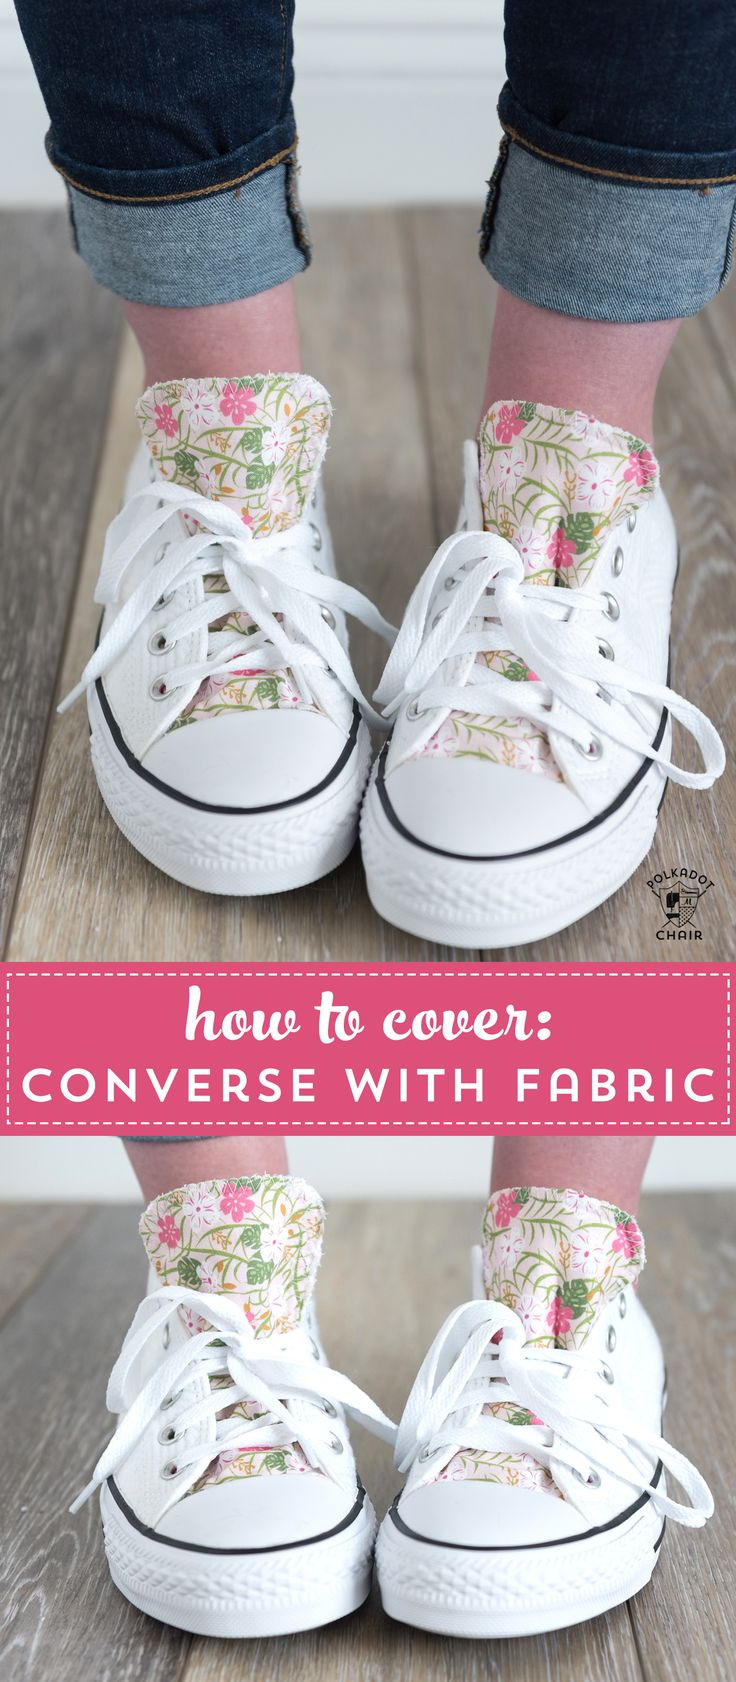 761ff71d4838 How to customize your converse with fabric - a DIY way to decorate the  tongue of